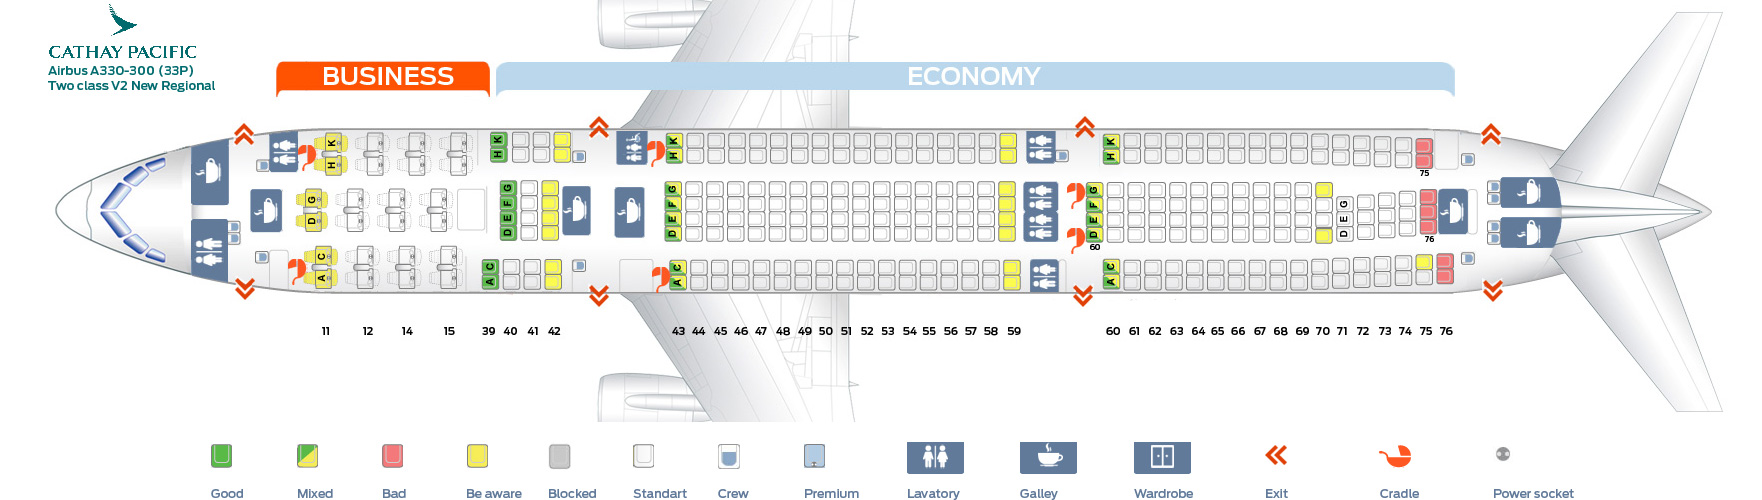 Seat Map Airbus A330-300 Two class V2 New regional